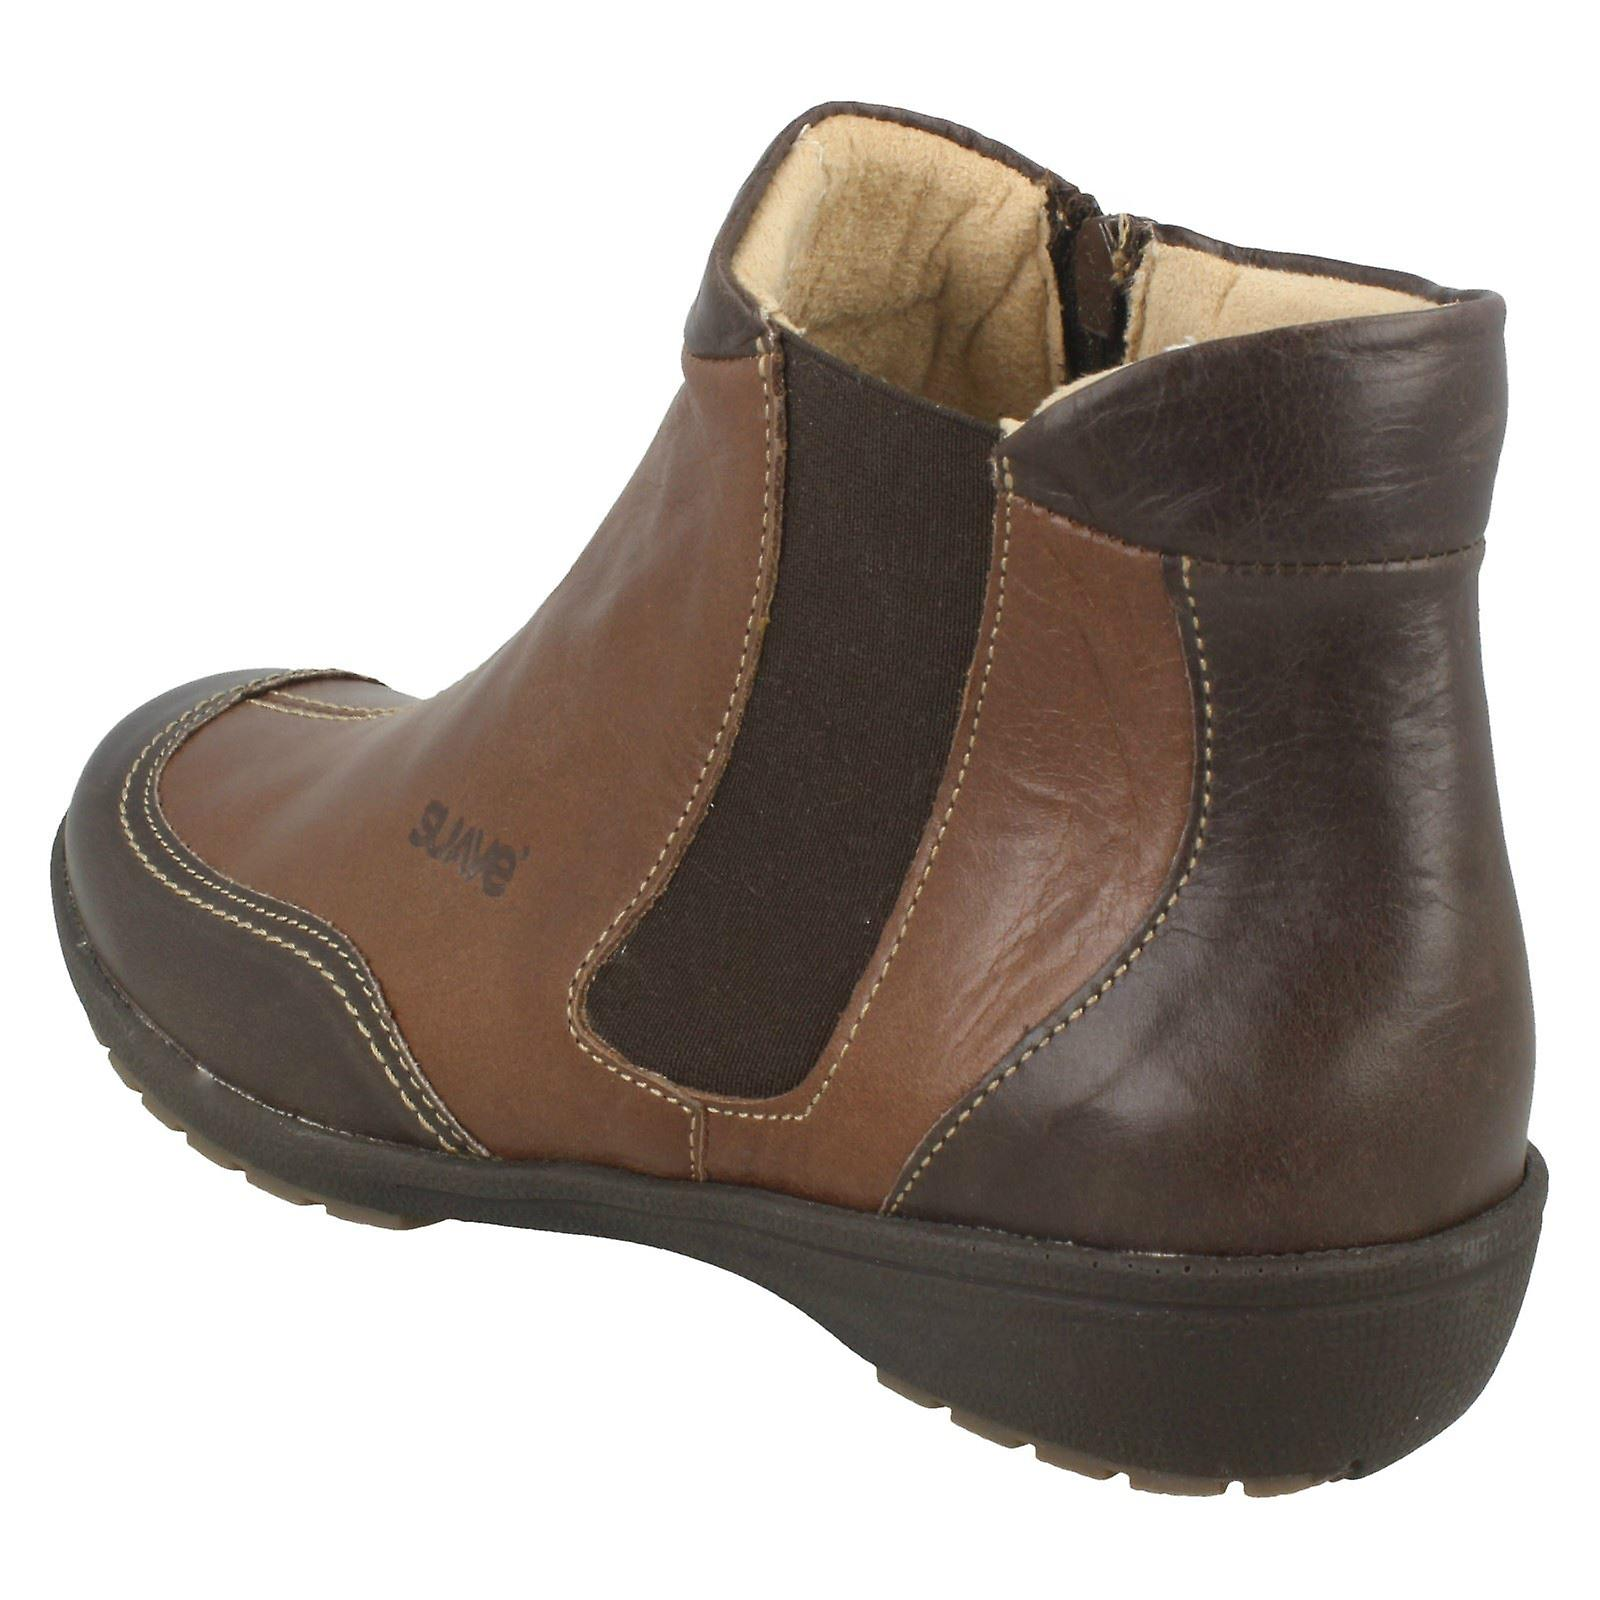 Ladies Suave Casual Ankle Boots Julie